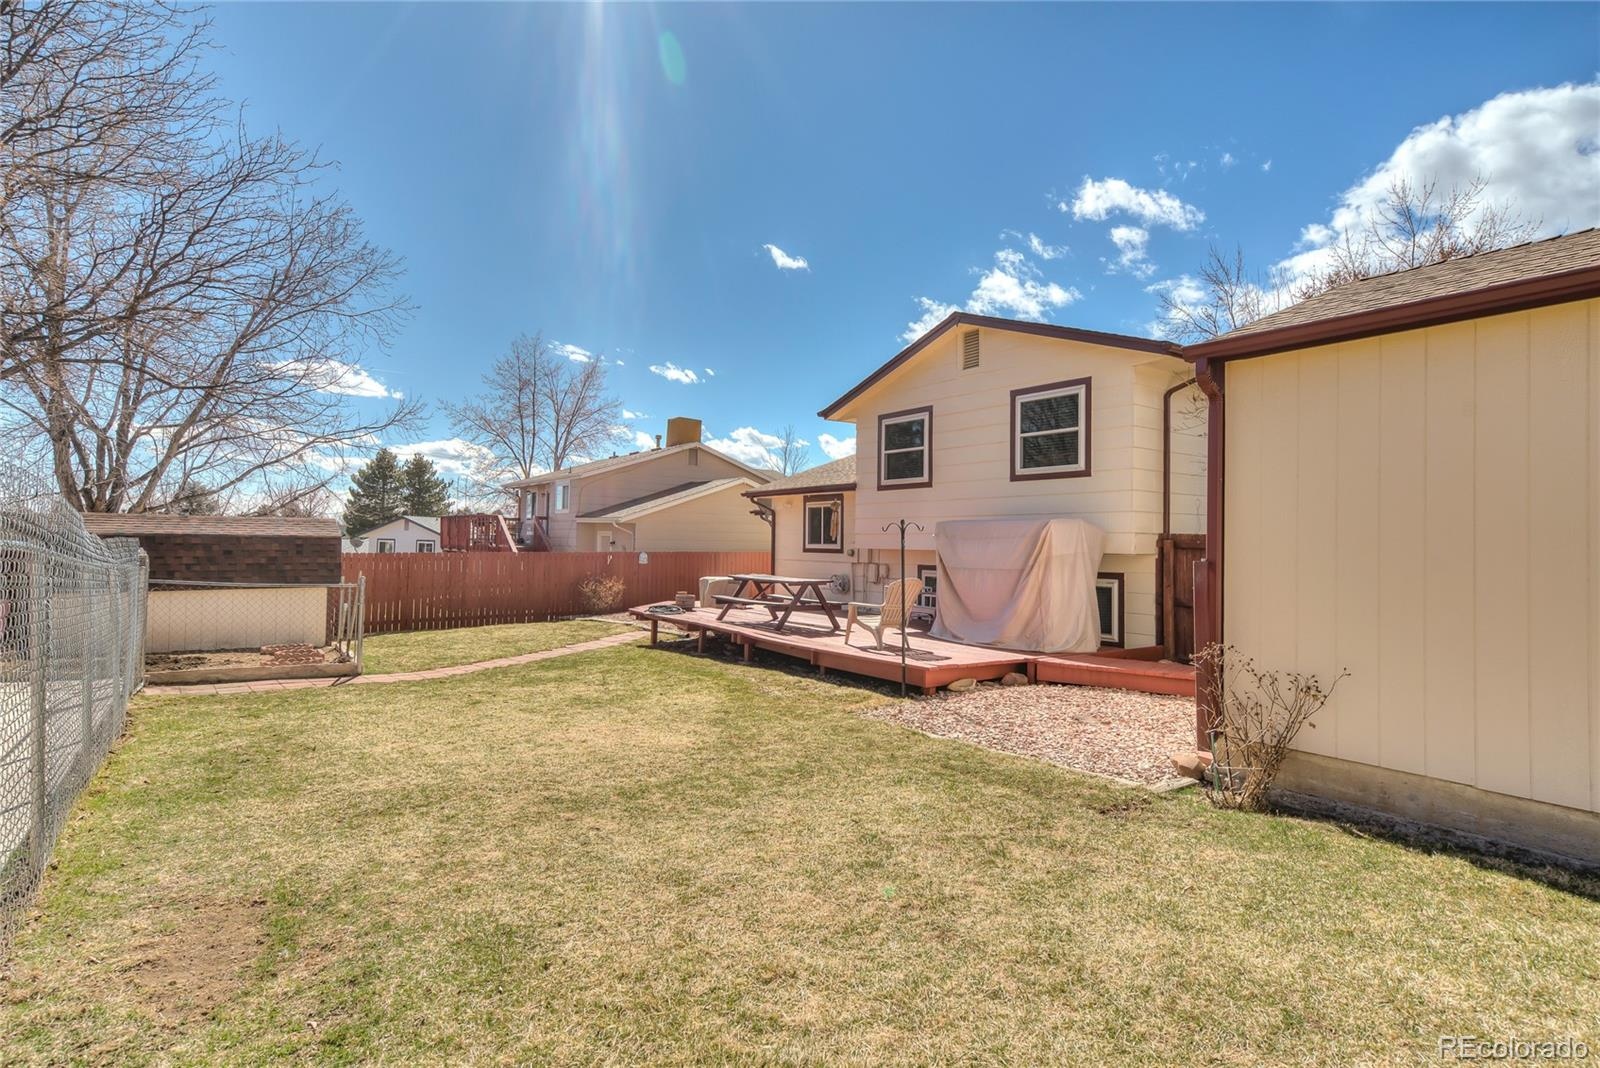 MLS# 2811379 - 25 - 9645 W David Avenue, Littleton, CO 80128